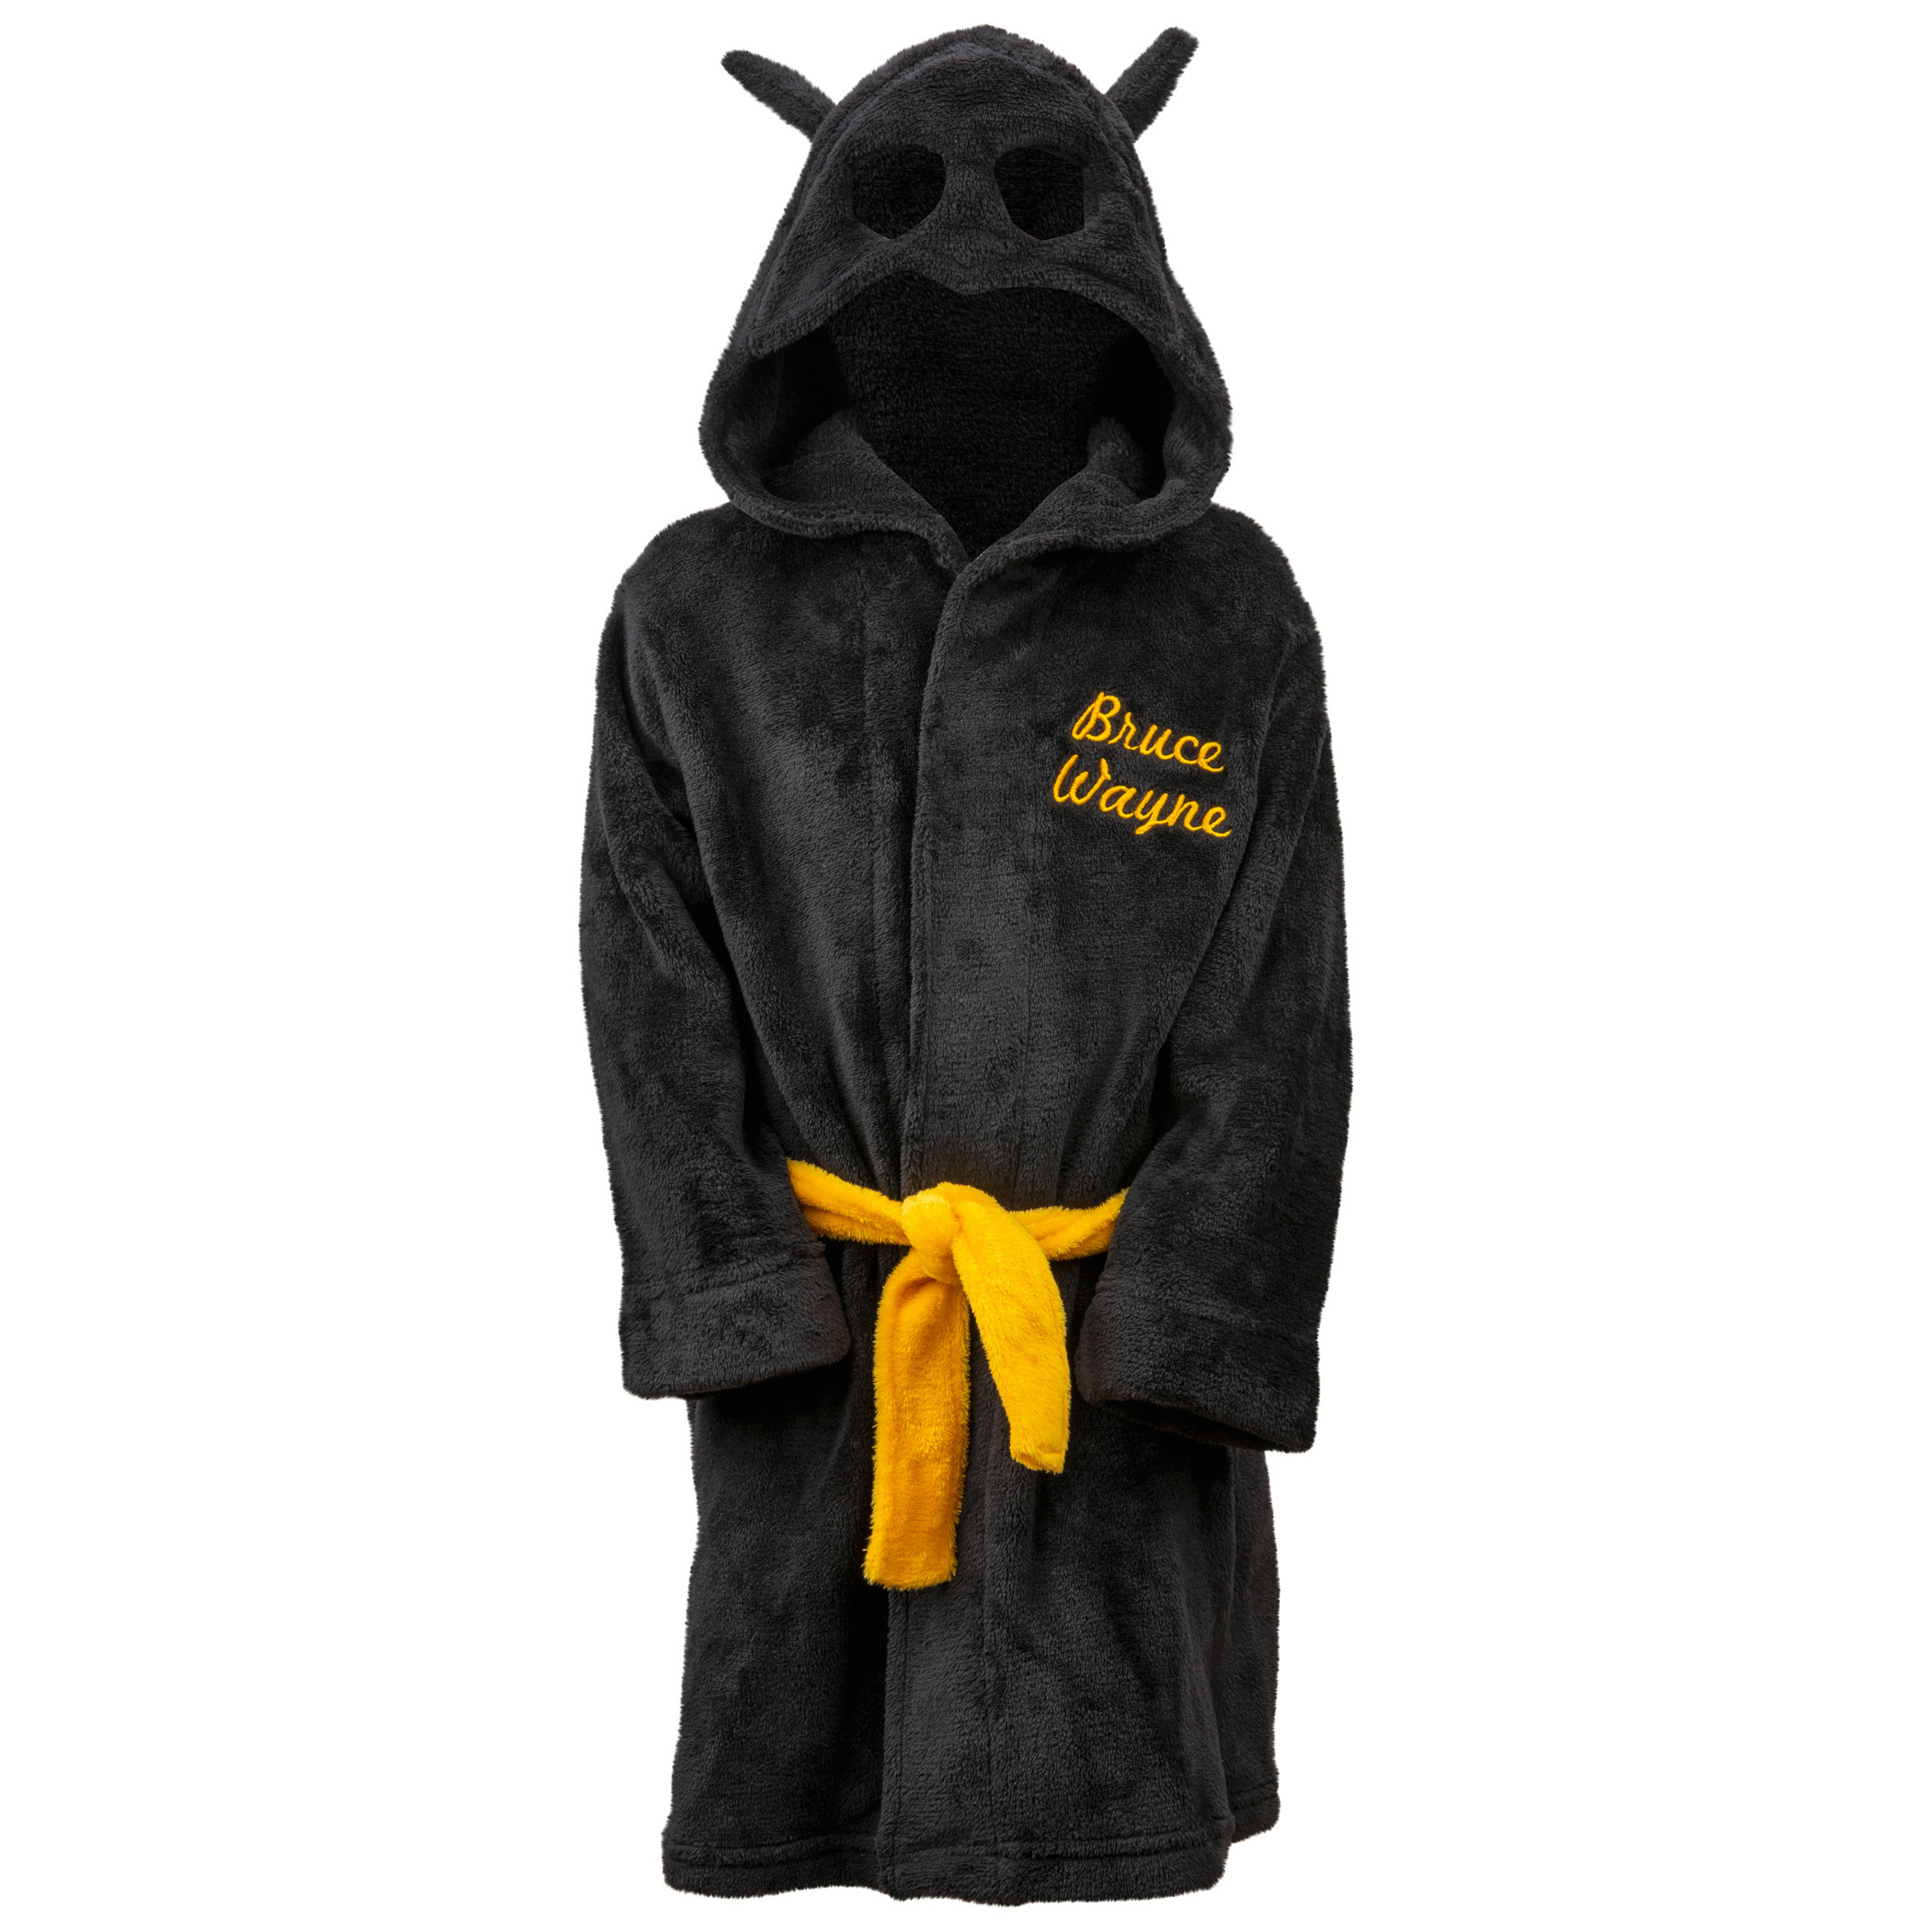 Batman Bruce Wayne Velvet Fleece Kids Hooded Robe